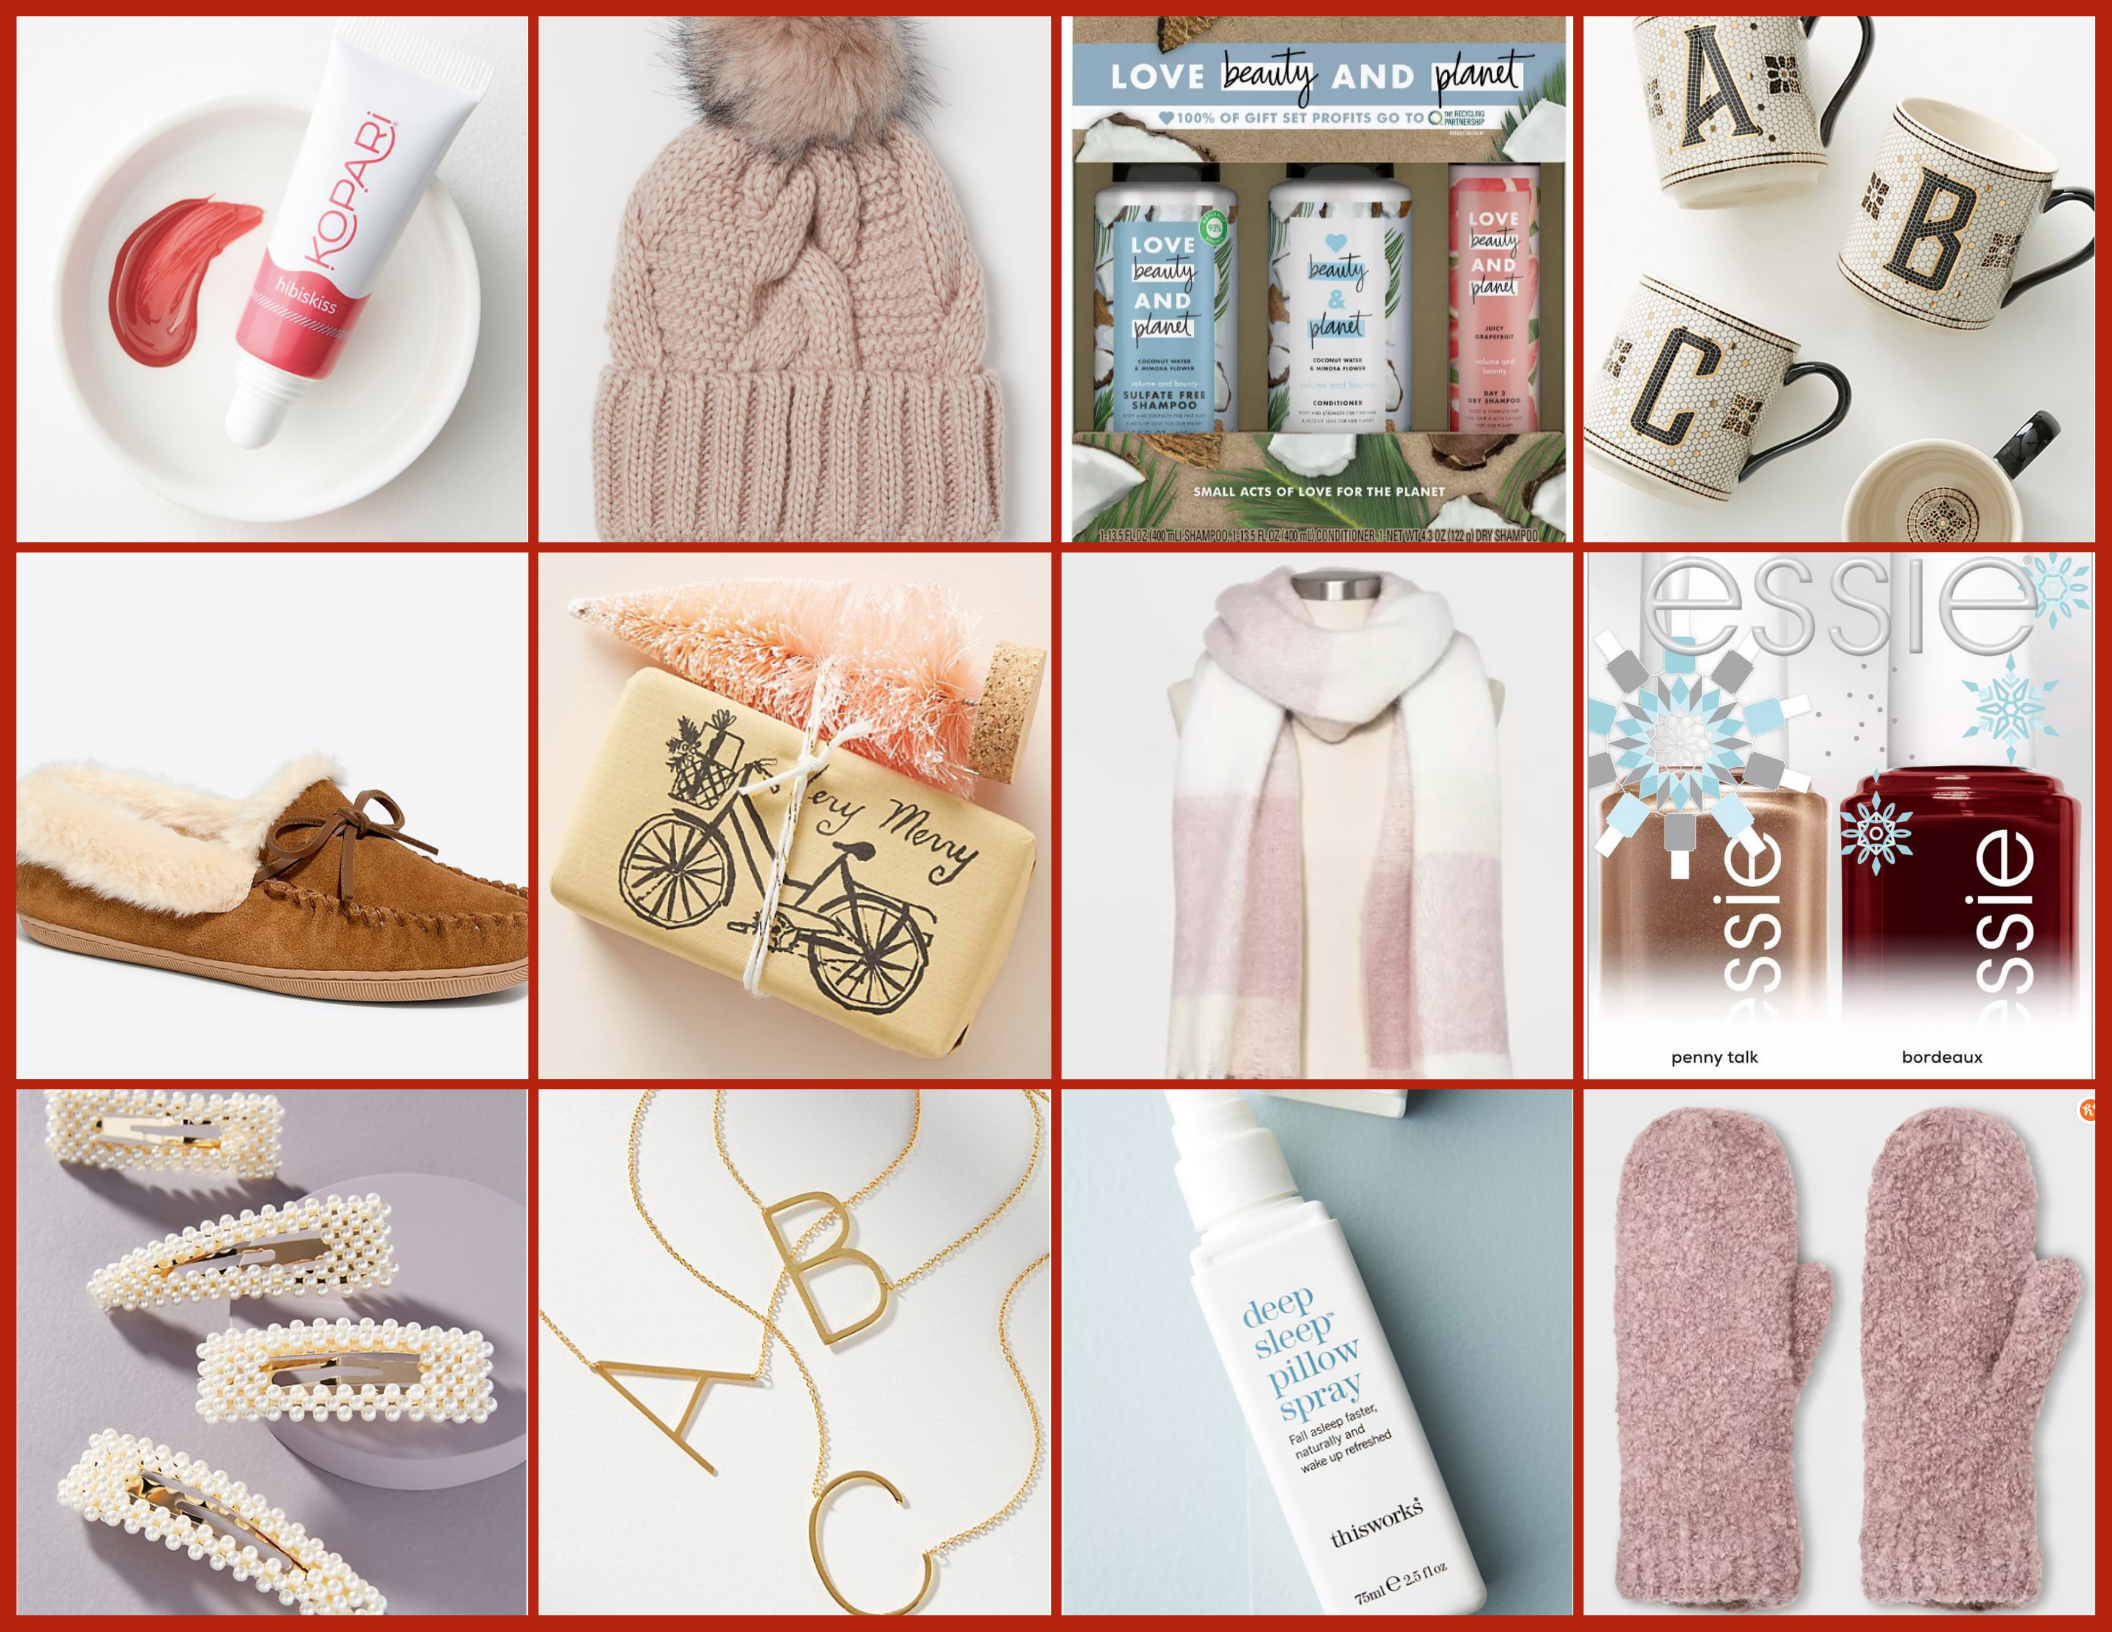 Gift Guide for Her | Hey Its Camille Grey #giftguide #holiday #forher #women #fashion #giftideas #gifts